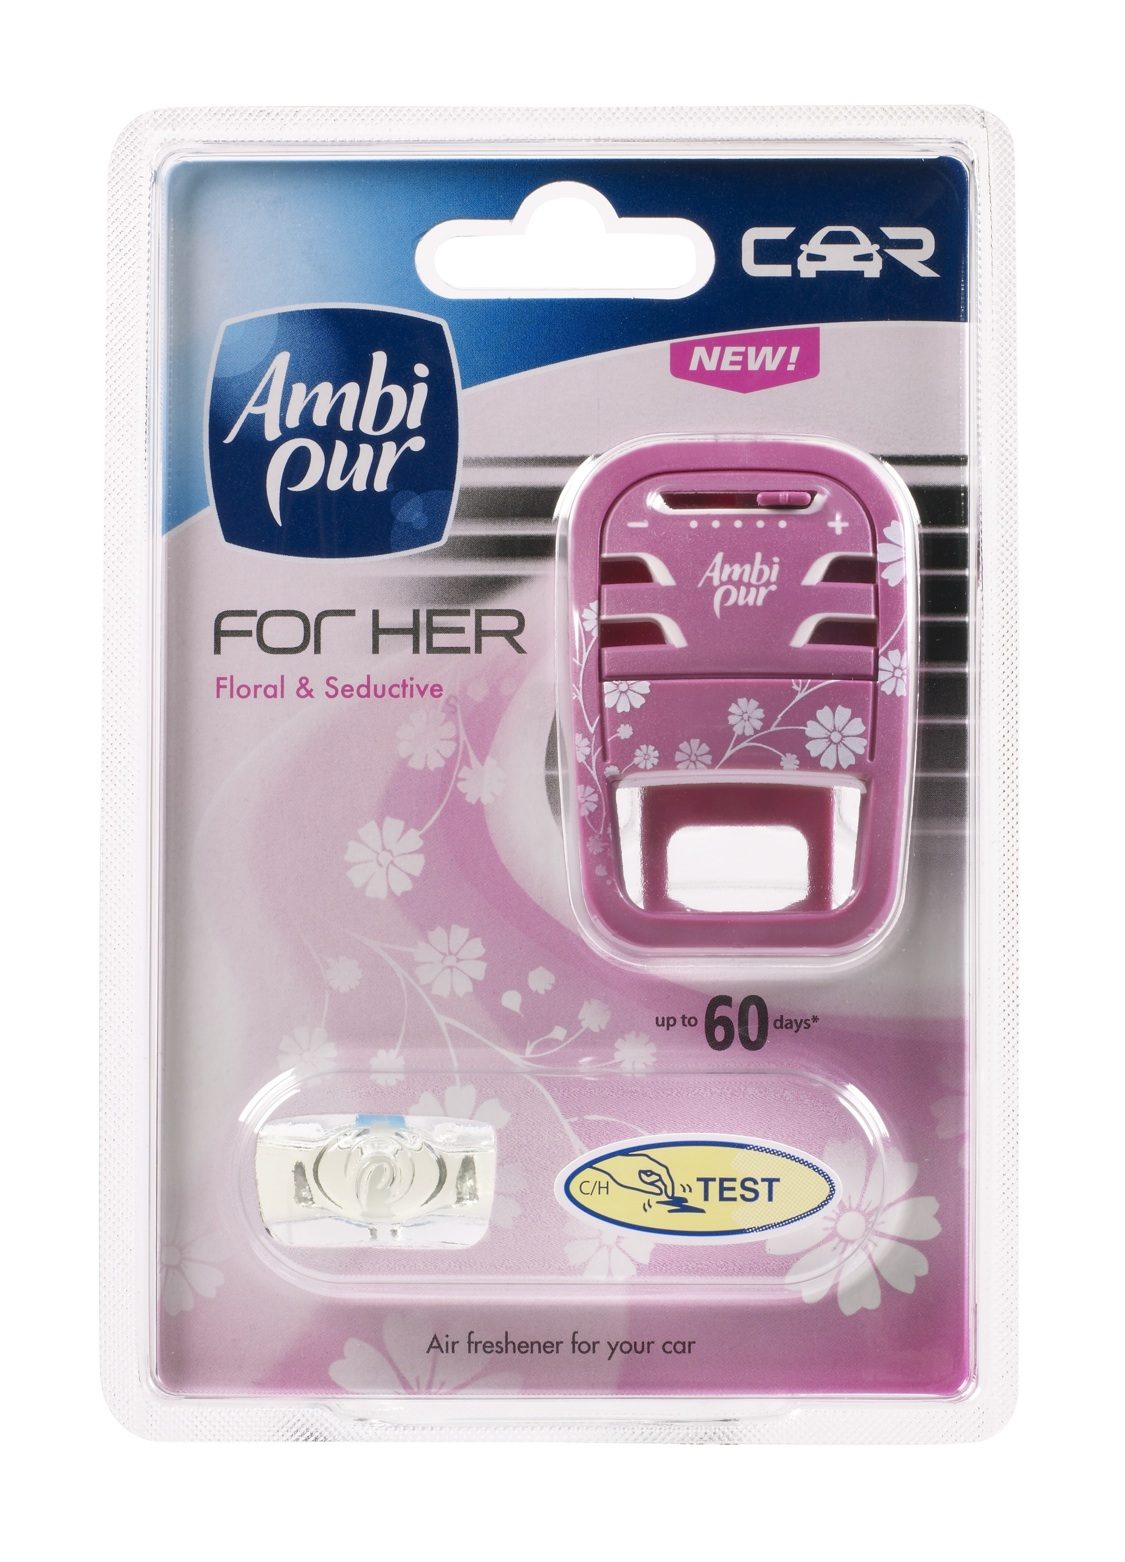 Ambi pur car for her air freshener for your car